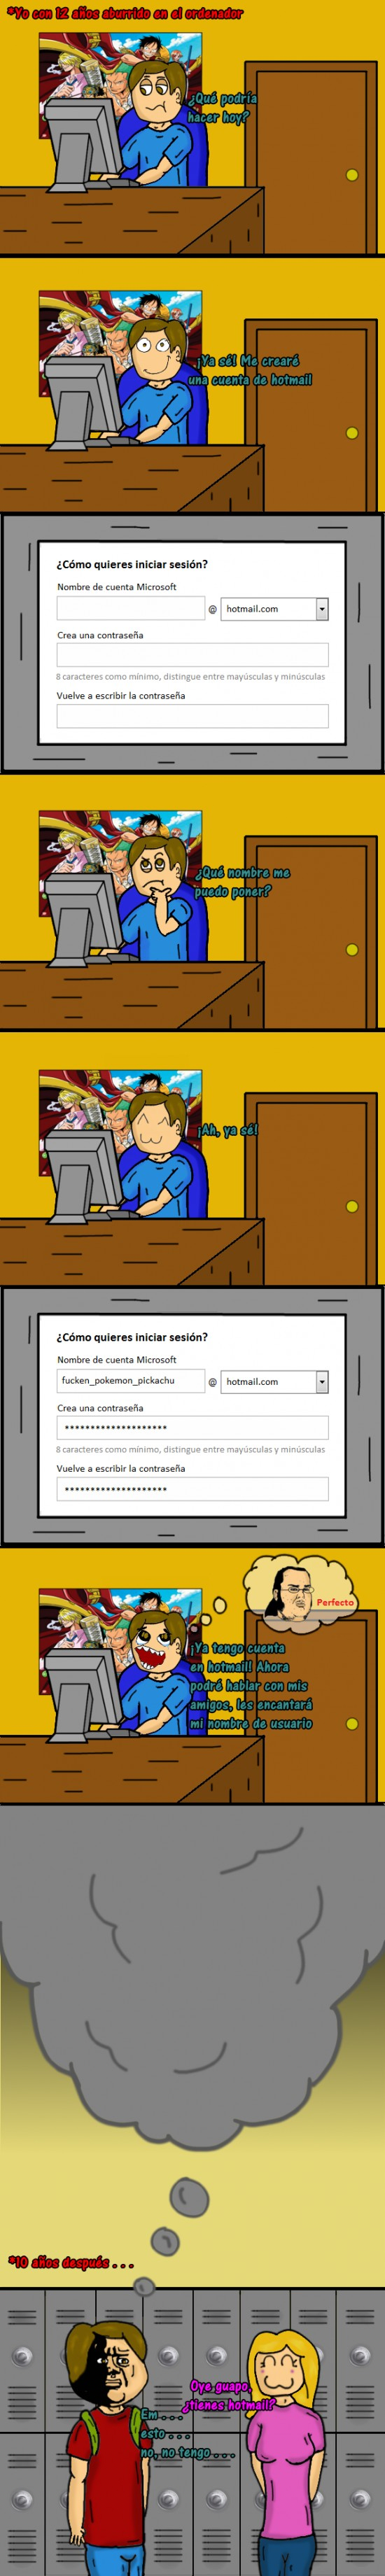 Oh_god_why - Cuenta de hotmail